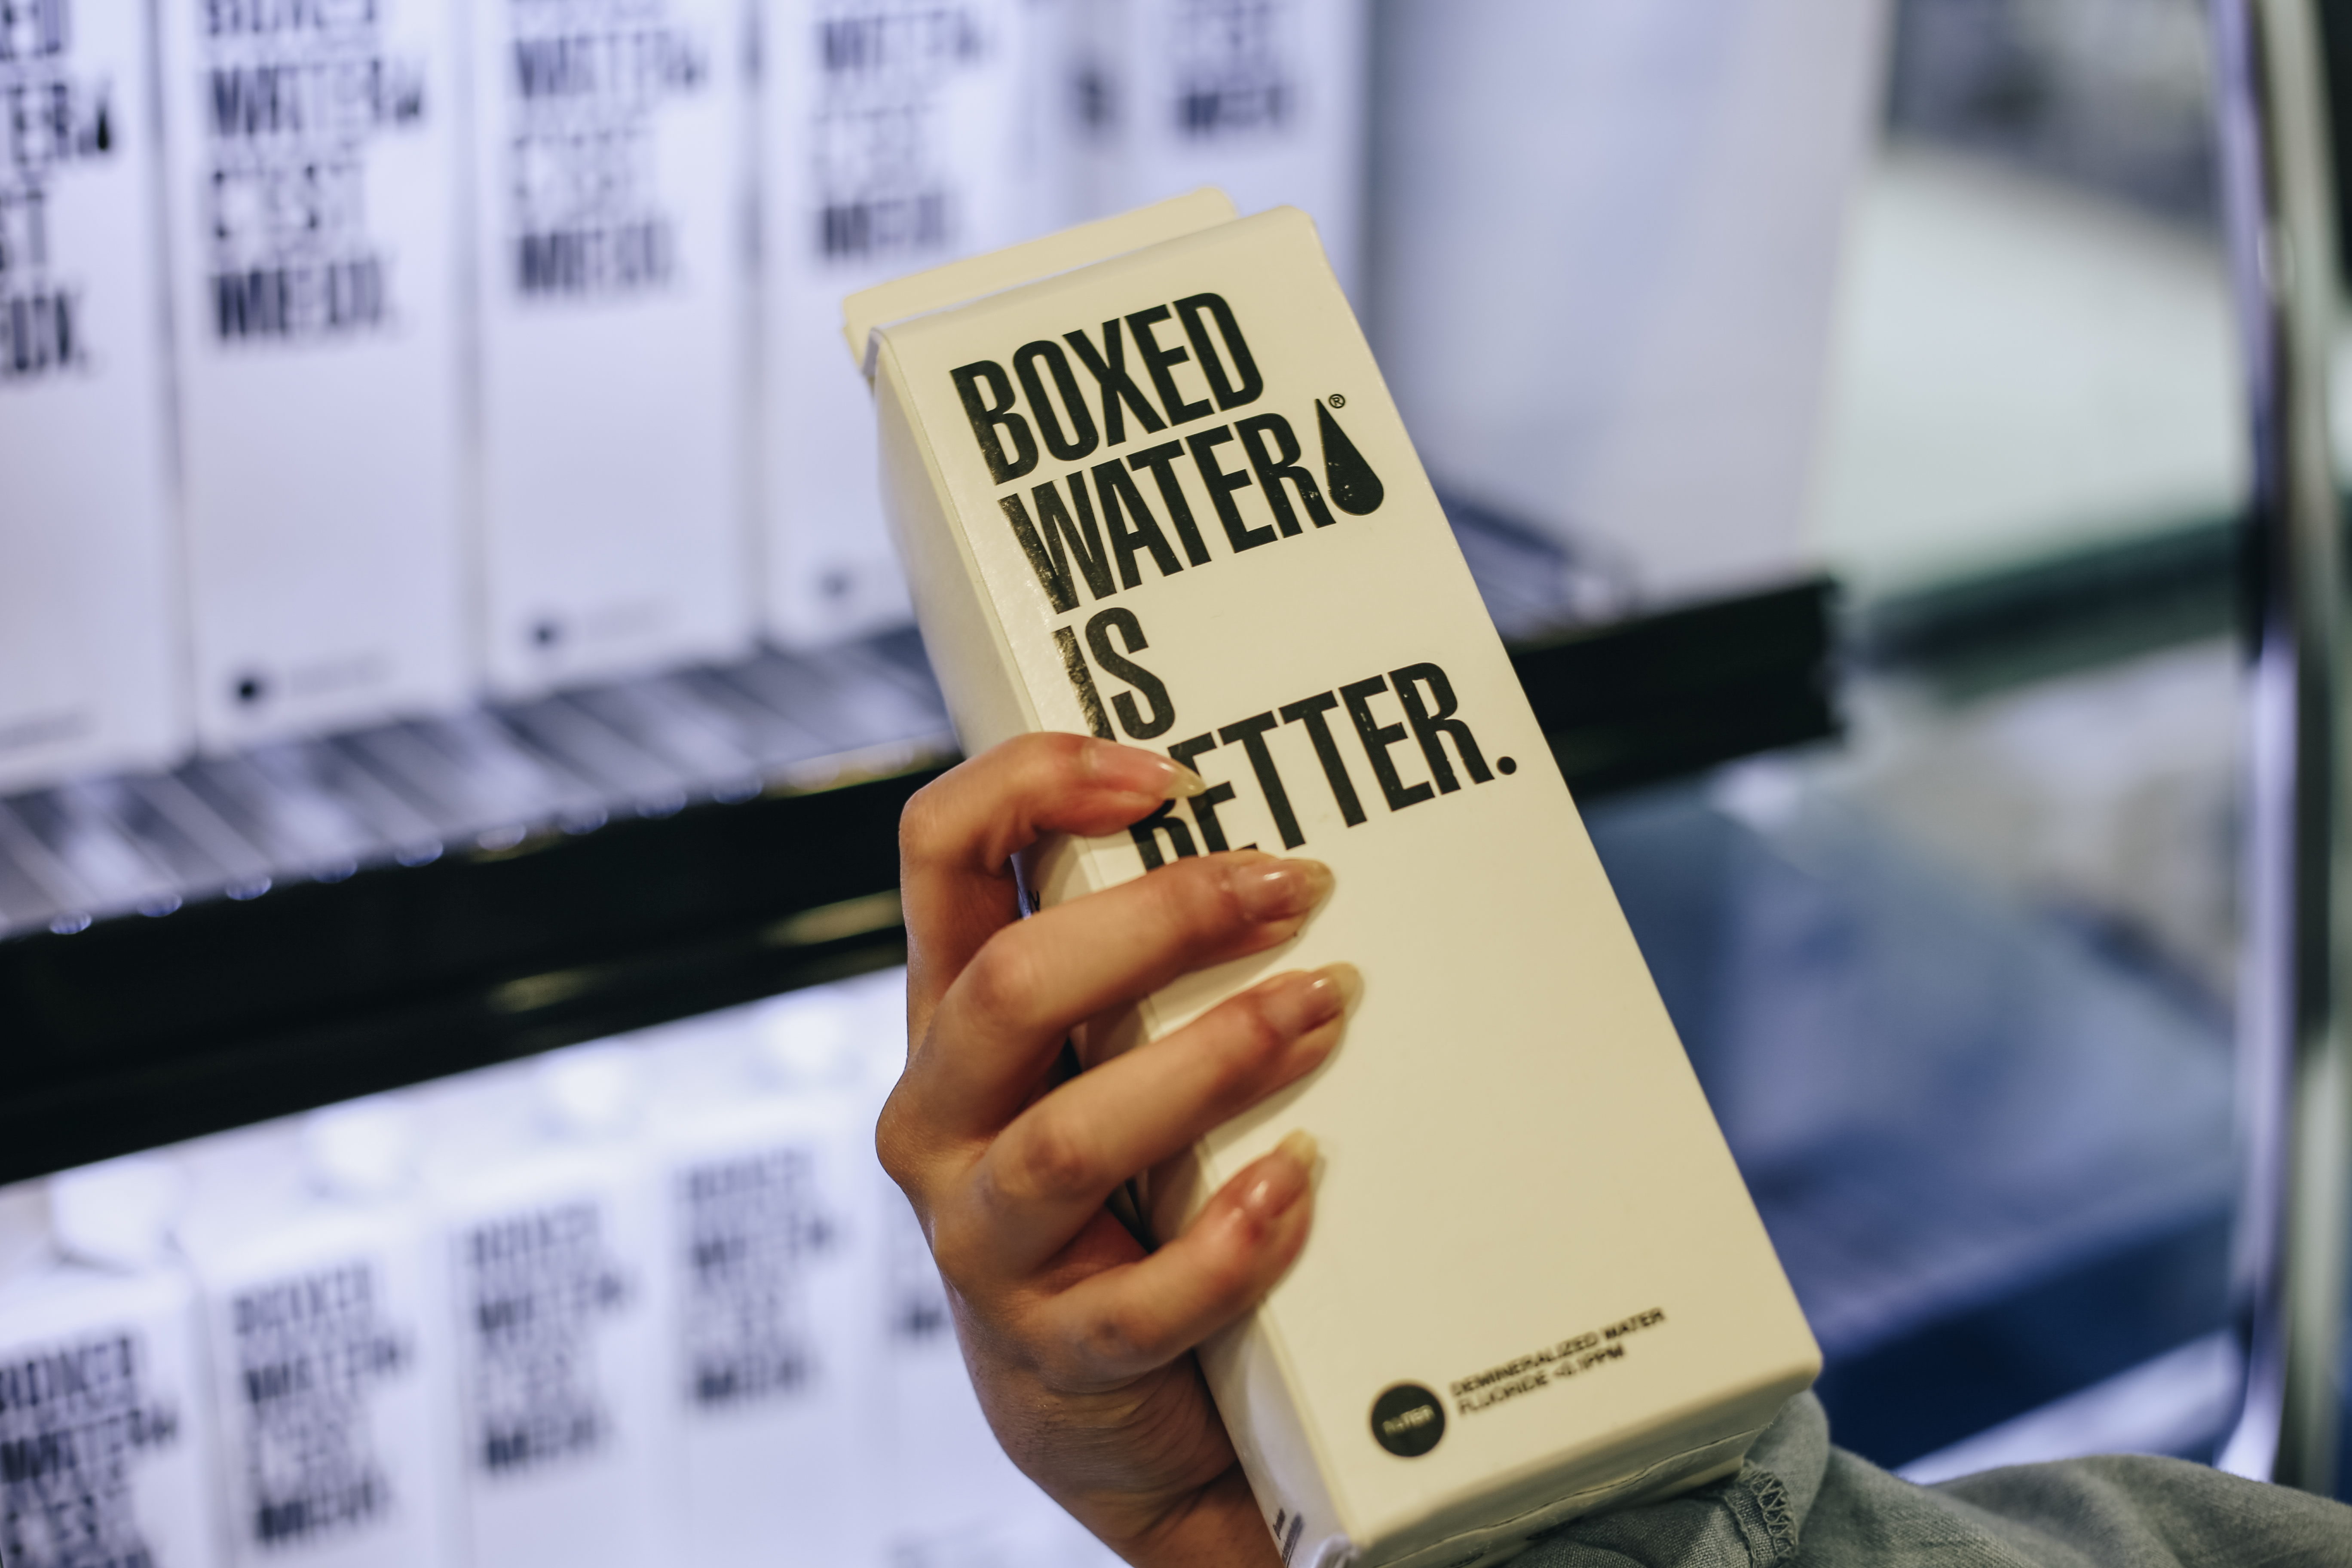 Bye-bye plastic, hello boxed water In an effort to promote sustainability and healthy active living, Union Market has phased out plastic water bottles